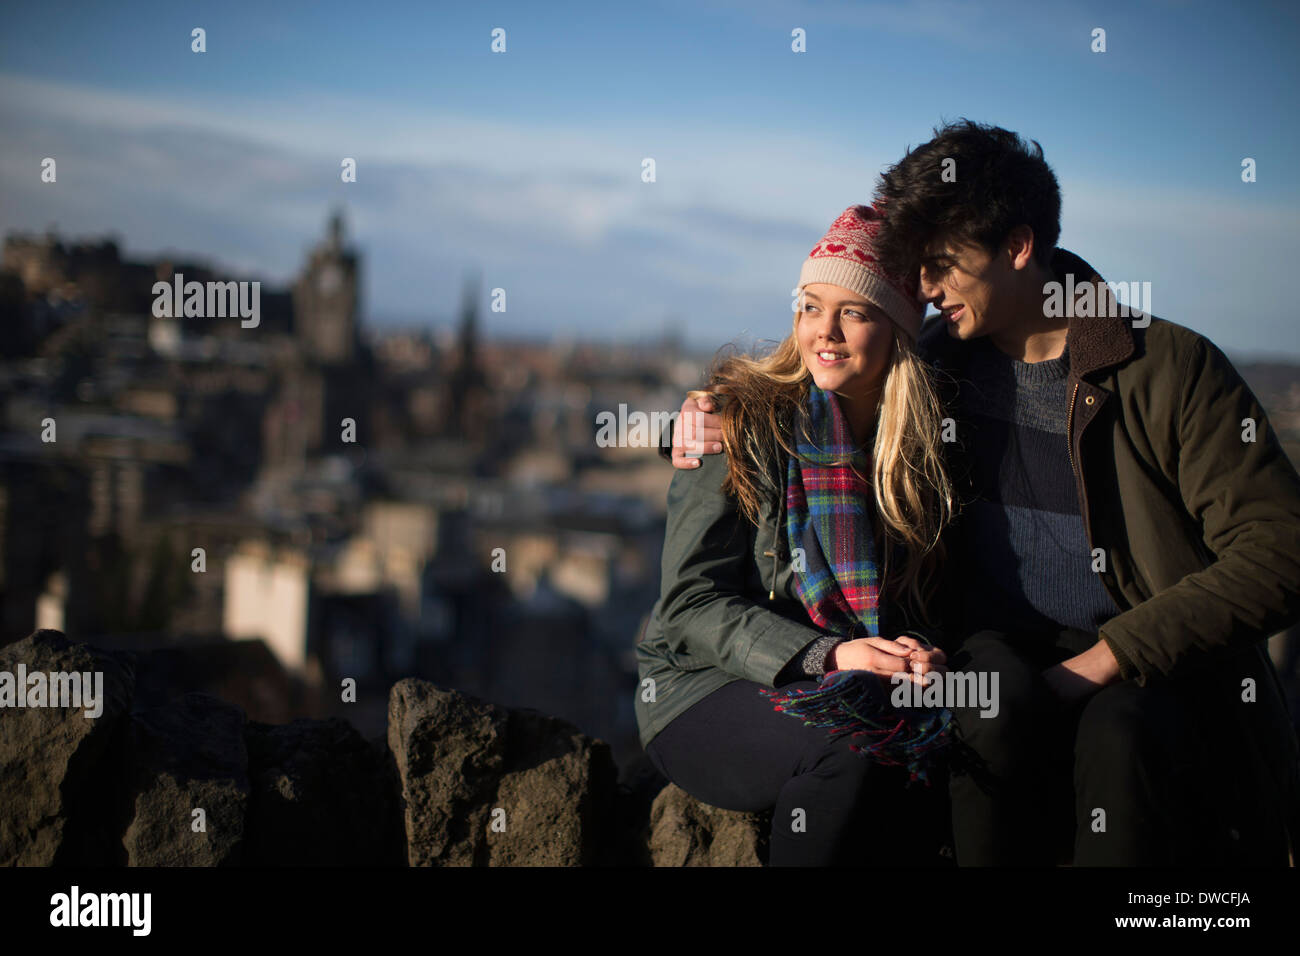 A young couple hug on Calton Hill with the background of the city of Edinburgh, capital of Scotland - Stock Image